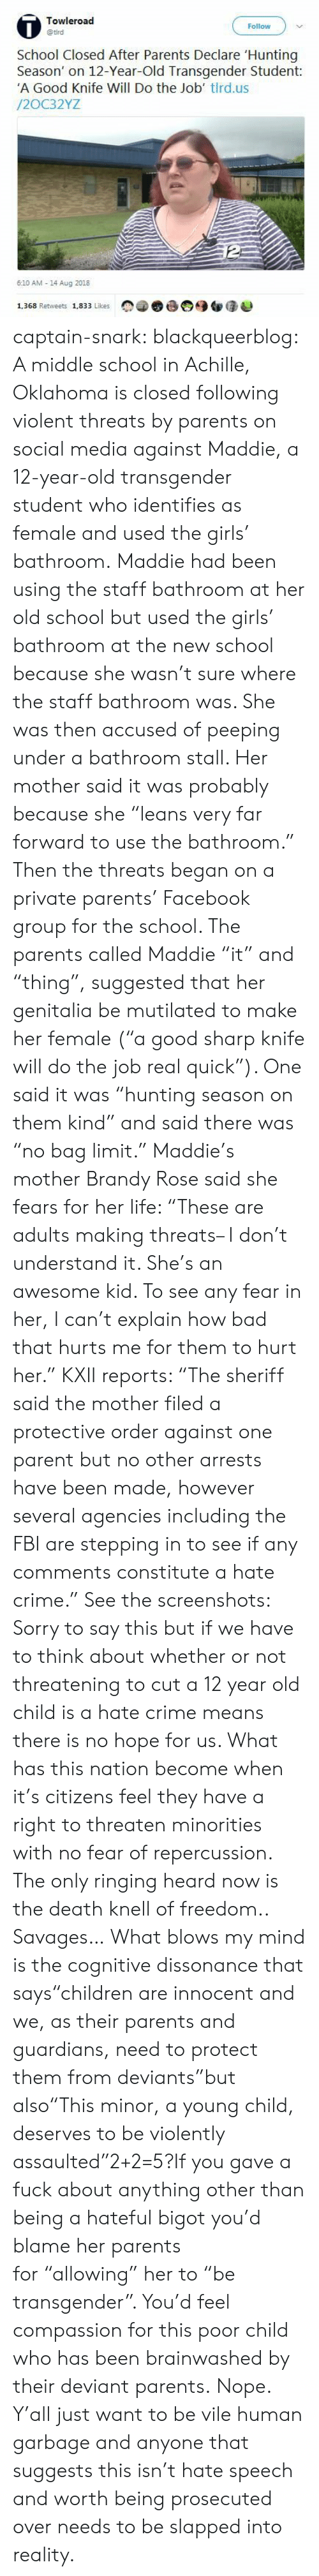 "Bad, Crime, and Facebook: 0  Towleroad  @tird  Follow  School Closed After Parents Declare Hunting  Season' on 12-Year-Old Transgender Student  'A Good Knife Will Do the Job' tlrd.us  /2OC32YZ  6:10 AM 14 Aug 2018  ▼  合颀钮谈遮  1.368 Retweets 1,833 Likes captain-snark:  blackqueerblog: A middle school in Achille, Oklahoma is closed following violent threats by parents on social media against Maddie, a 12-year-old transgender student who identifies as female and used the girls' bathroom. Maddie had been using the staff bathroom at her old school but used the girls' bathroom at the new school because she wasn't sure where the staff bathroom was. She was then accused of peeping under a bathroom stall. Her mother said it was probably because she ""leans very far forward to use the bathroom."" Then the threats began on a private parents' Facebook group for the school. The parents called Maddie ""it"" and ""thing"", suggested that her genitalia be mutilated to make her female (""a good sharp knife will do the job real quick""). One said it was ""hunting season on them kind"" and said there was ""no bag limit."" Maddie's mother Brandy Rose said she fears for her life: ""These are adults making threats– I don't understand it. She's an awesome kid. To see any fear in her, I can't explain how bad that hurts me for them to hurt her."" KXII reports: ""The sheriff said the mother filed a protective order against one parent but no other arrests have been made, however several agencies including the FBI are stepping in to see if any comments constitute a hate crime."" See the screenshots: Sorry to say this but if we have to think about whether or not threatening to cut a 12 year old child is a hate crime means there is no hope for us. What has this nation become when it's citizens feel they have a right to threaten minorities with no fear of repercussion. The only ringing heard now is the death knell of freedom..  Savages…  What blows my mind is the cognitive dissonance that says""children are innocent and we, as their parents and guardians, need to protect them from deviants""but also""This minor, a young child, deserves to be violently assaulted""2+2=5?If you gave a fuck about anything other than being a hateful bigot you'd blame her parents for ""allowing"" her to ""be transgender"". You'd feel compassion for this poor child who has been brainwashed by their deviant parents. Nope. Y'all just want to be vile human garbage and anyone that suggests this isn't hate speech and worth being prosecuted over needs to be slapped into reality."